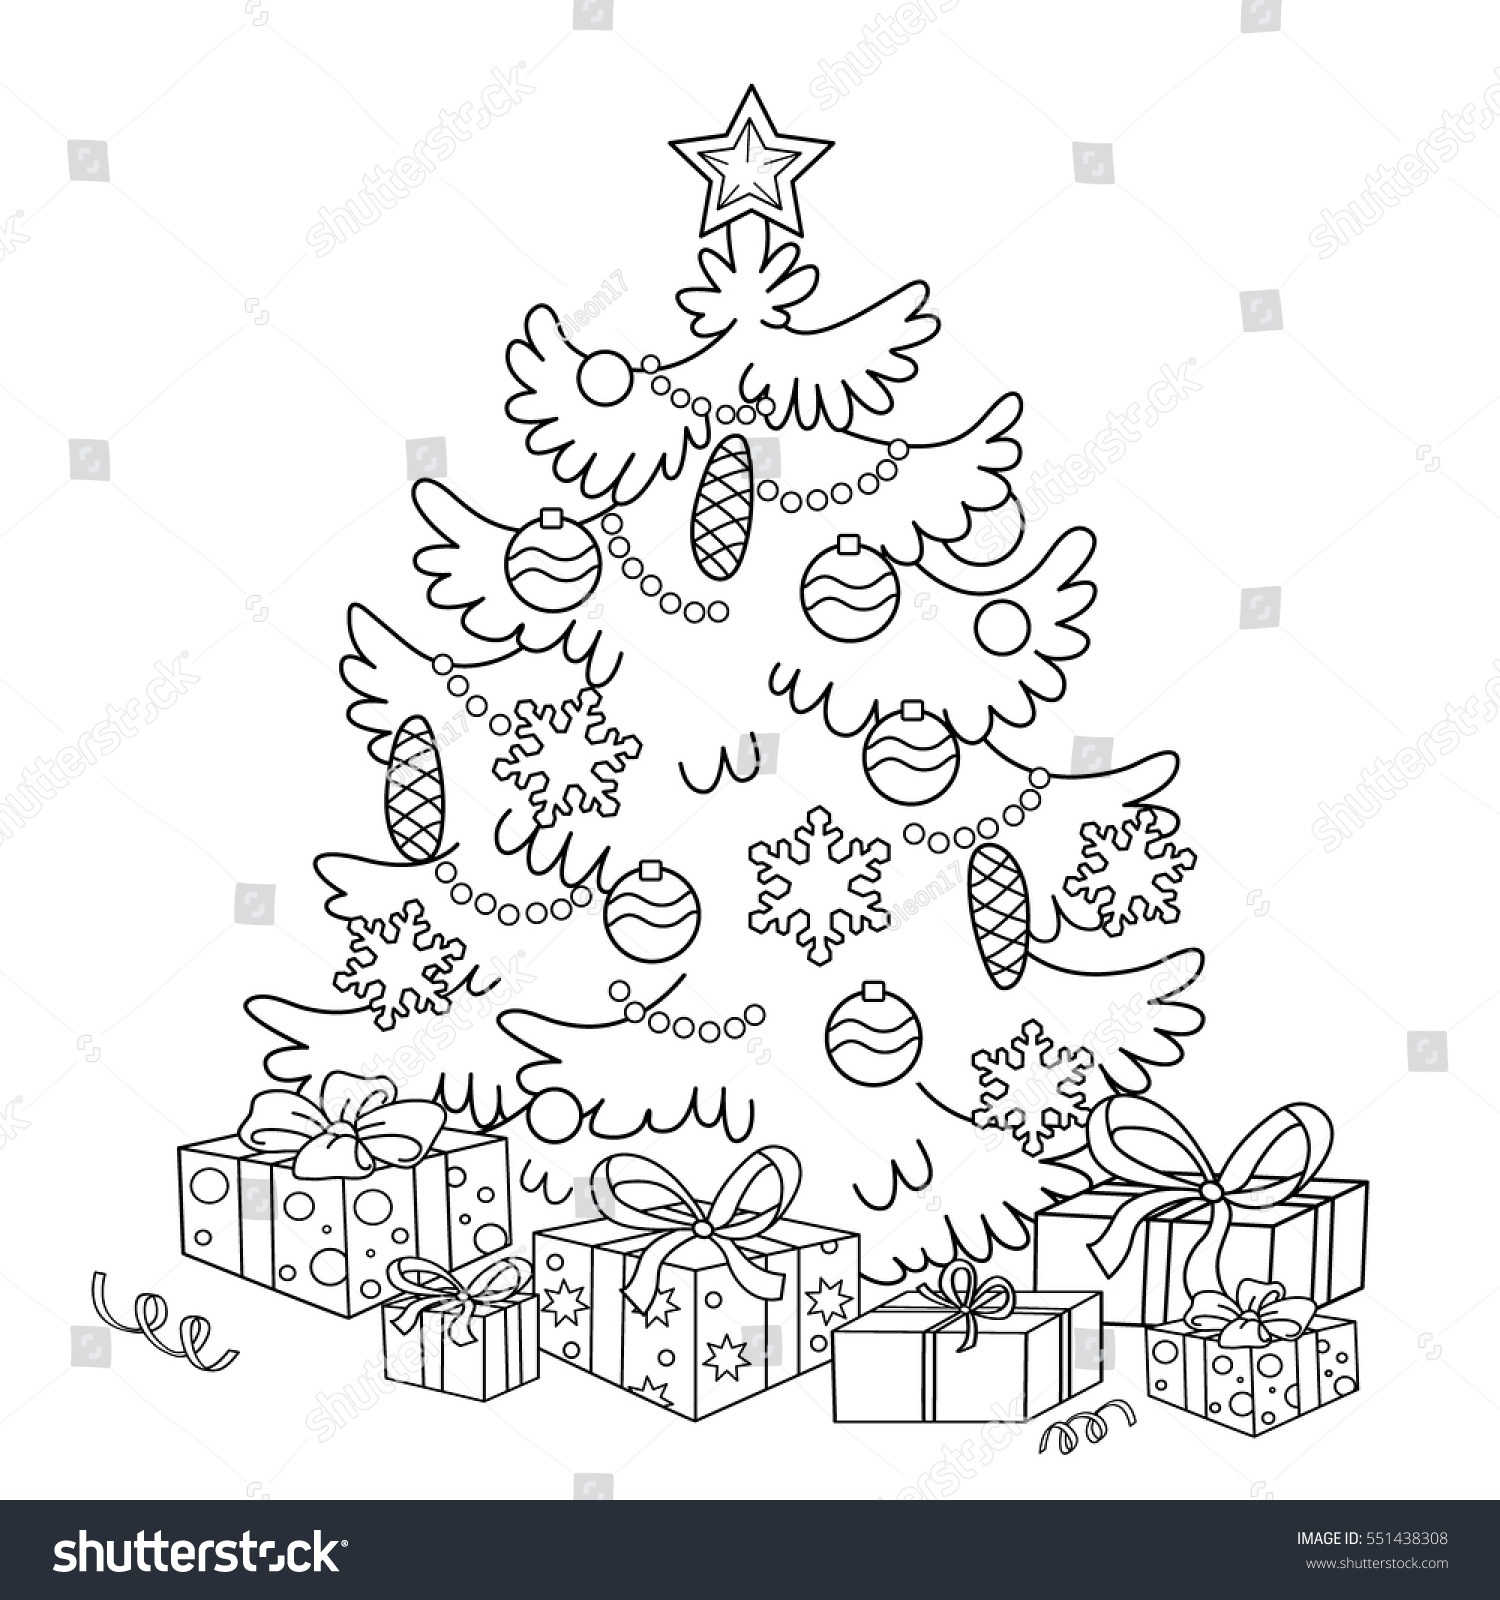 Christmas Coloring Outline With Page Cartoon Tree Stock Vector Royalty